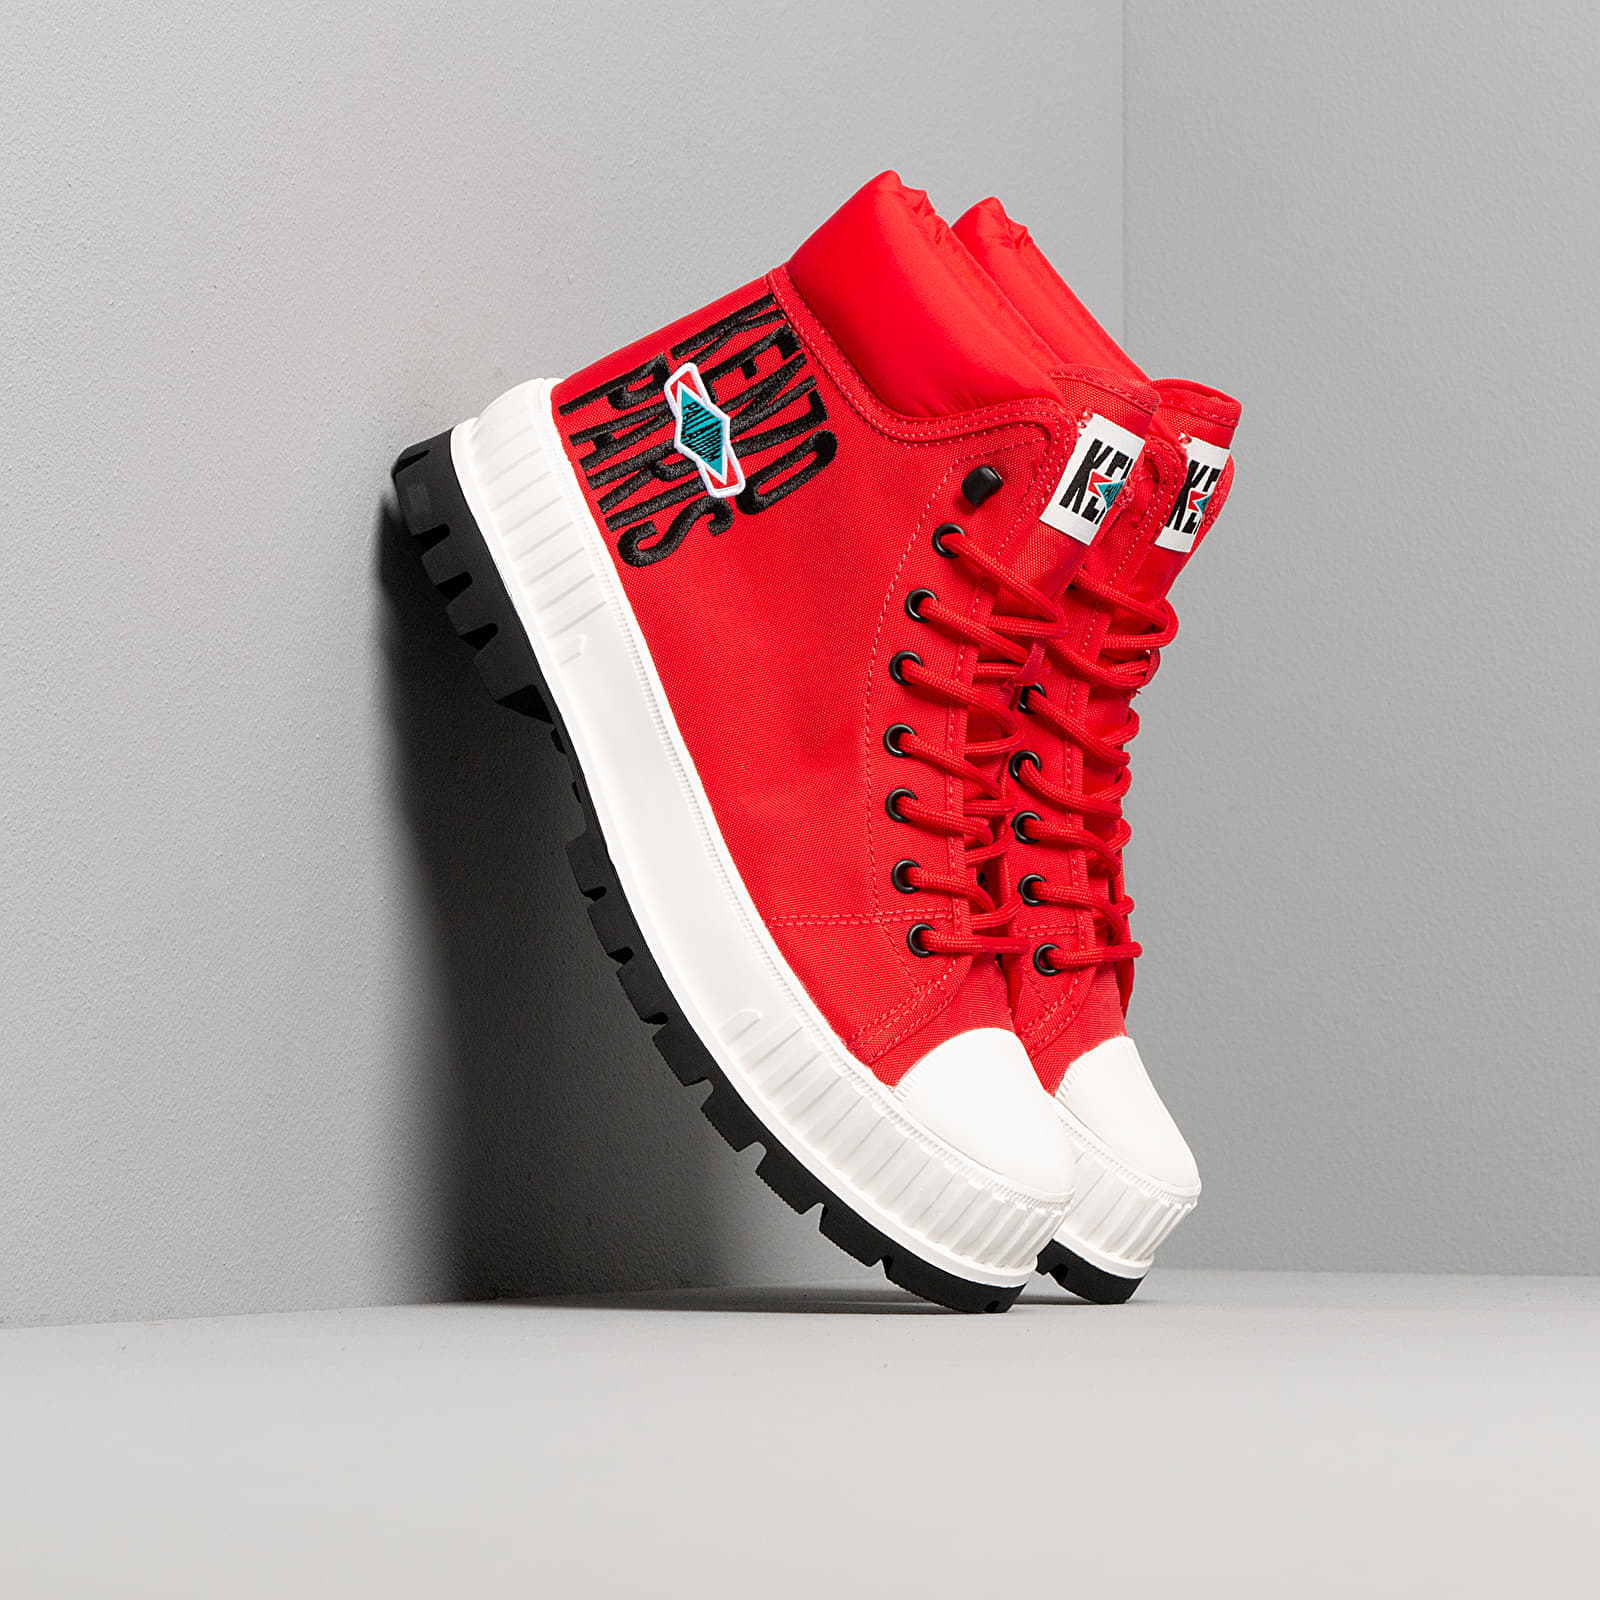 KENZO x Palladium High top Sneaker